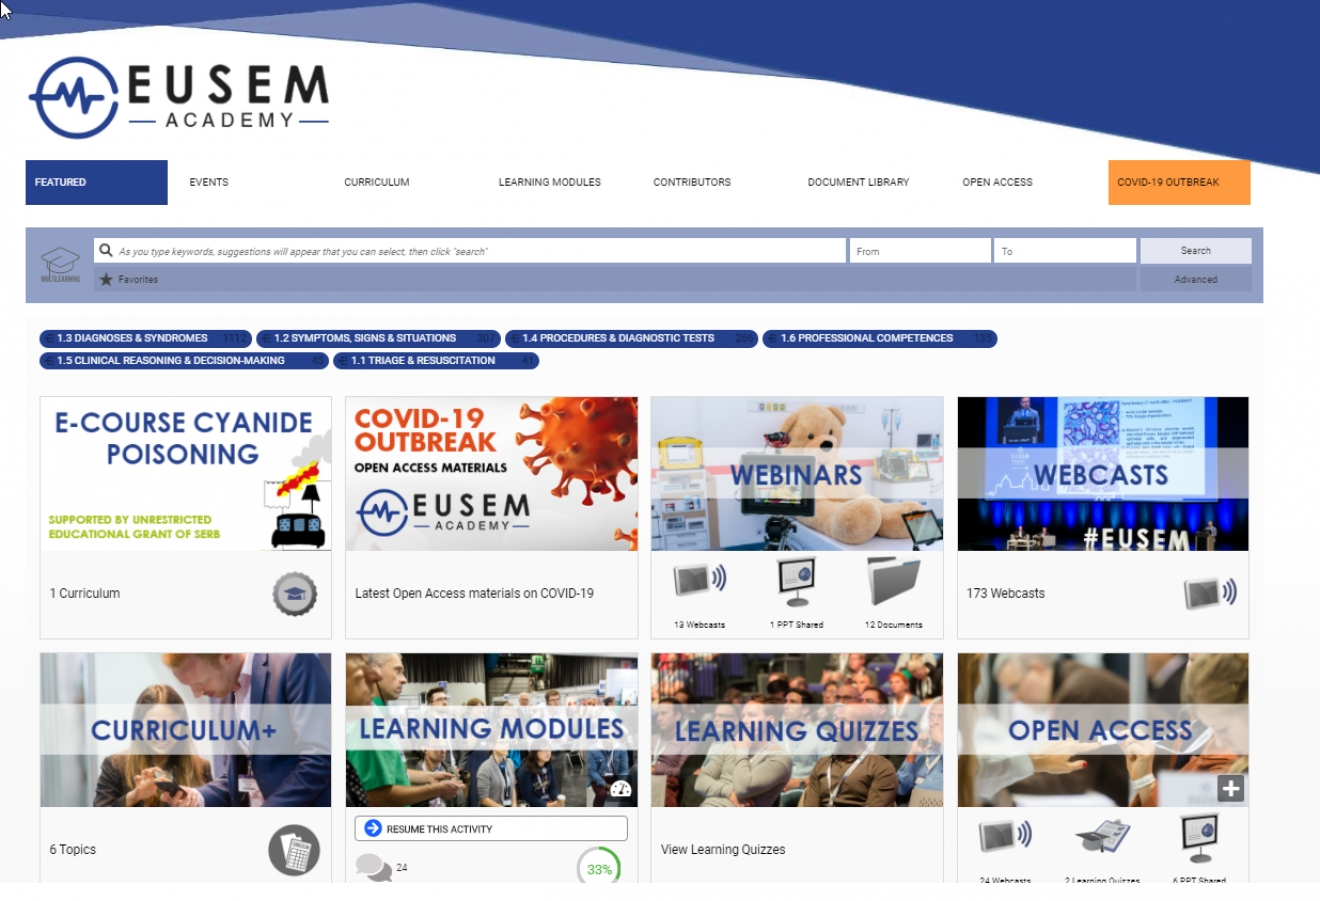 Help us keeping the EUSEM Academy up-to-date